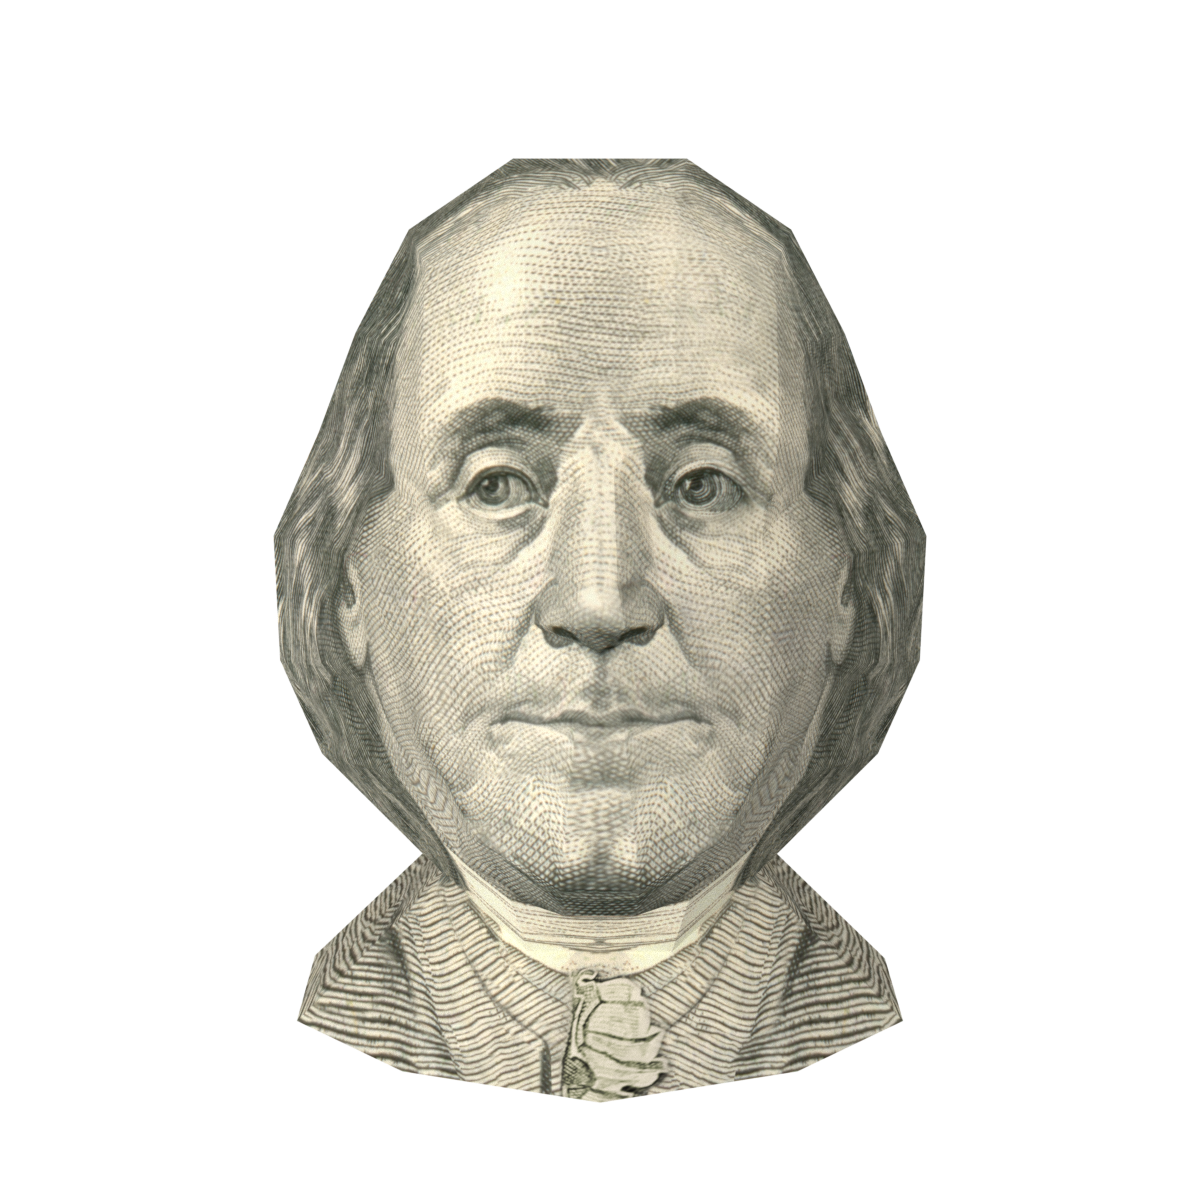 US $100 Bill- Benjamin Franklin